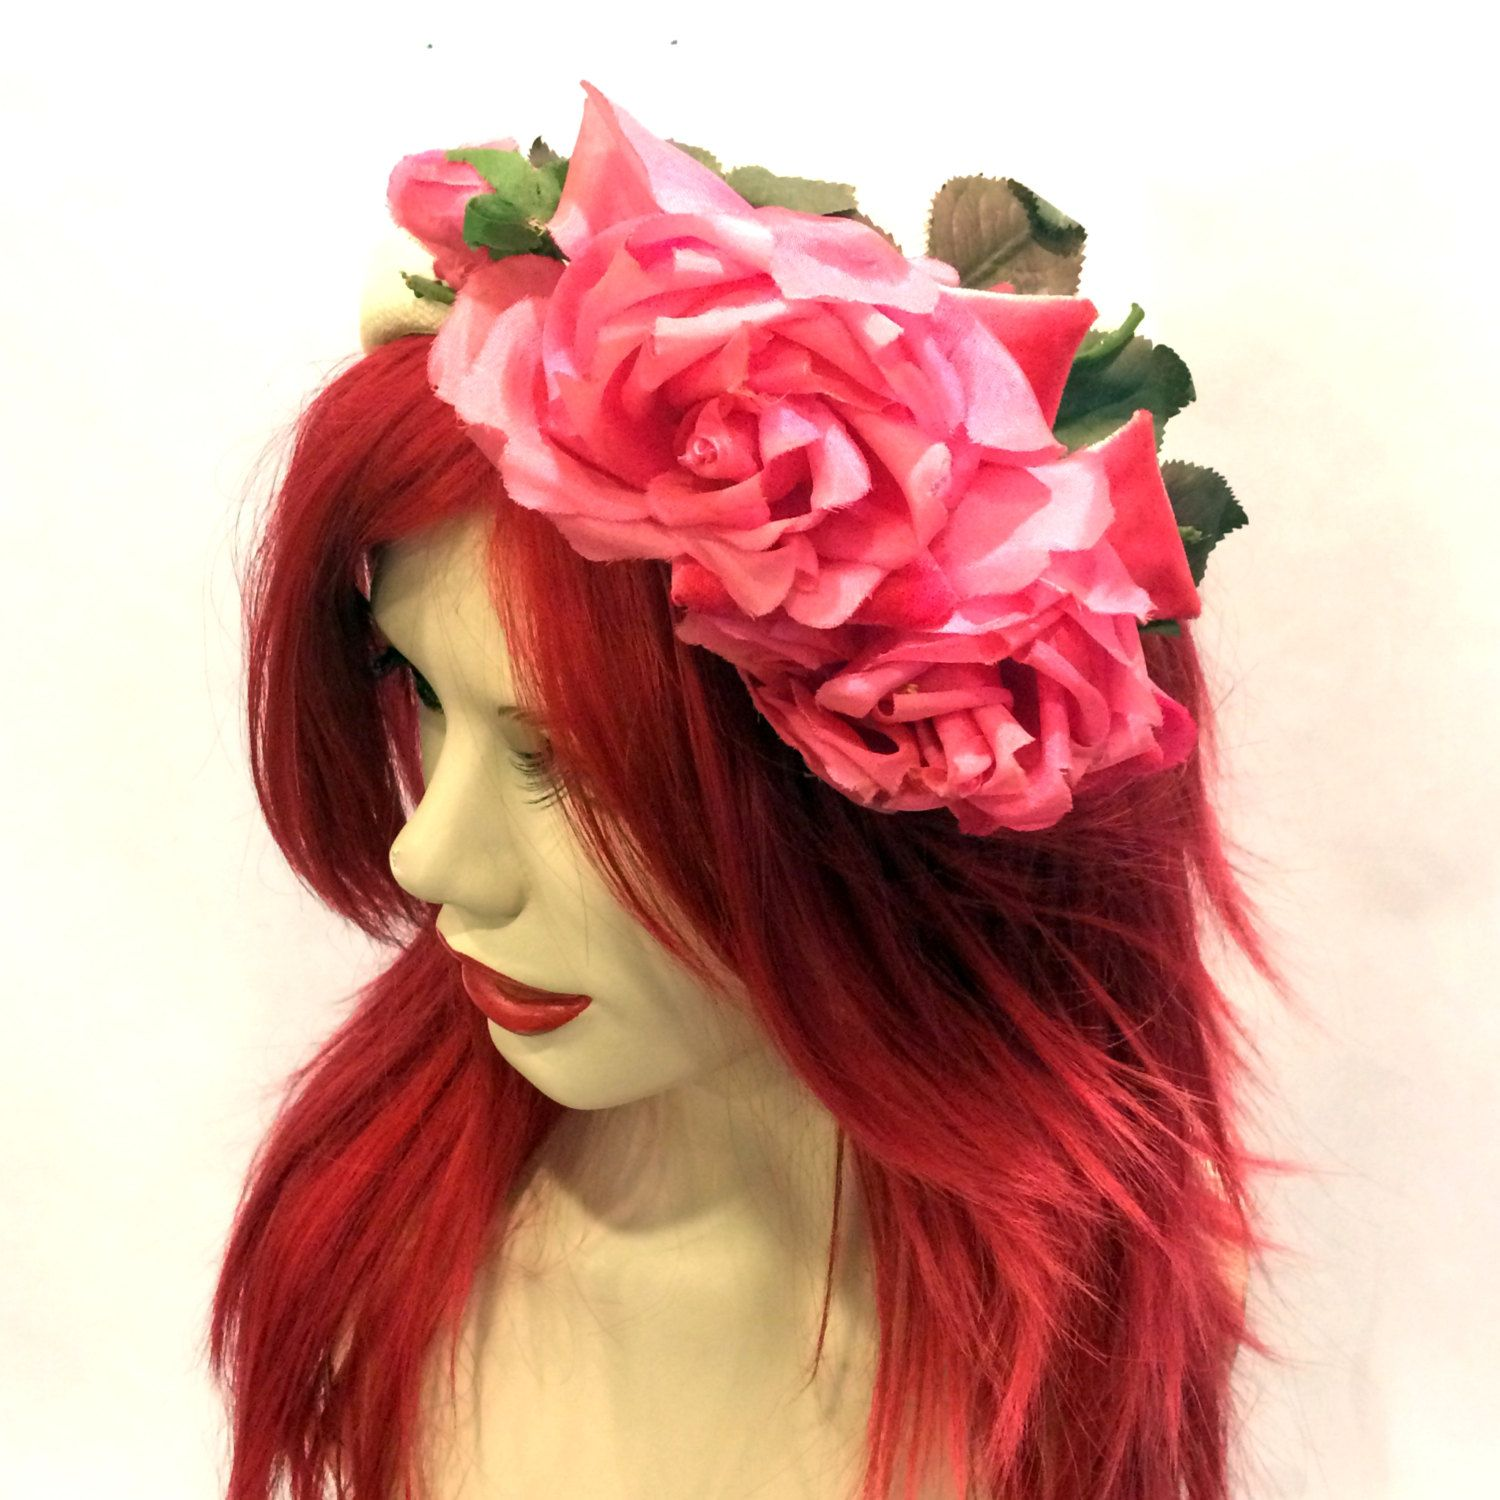 Vintage 1950's Natural Straw Curved Half Hat With Bright Pink Silk & Velvet Roses, Fascinator Hat, Mini Hat, Pinup Retro, Spring Fashion Hat by VintageDoylestown on Etsy